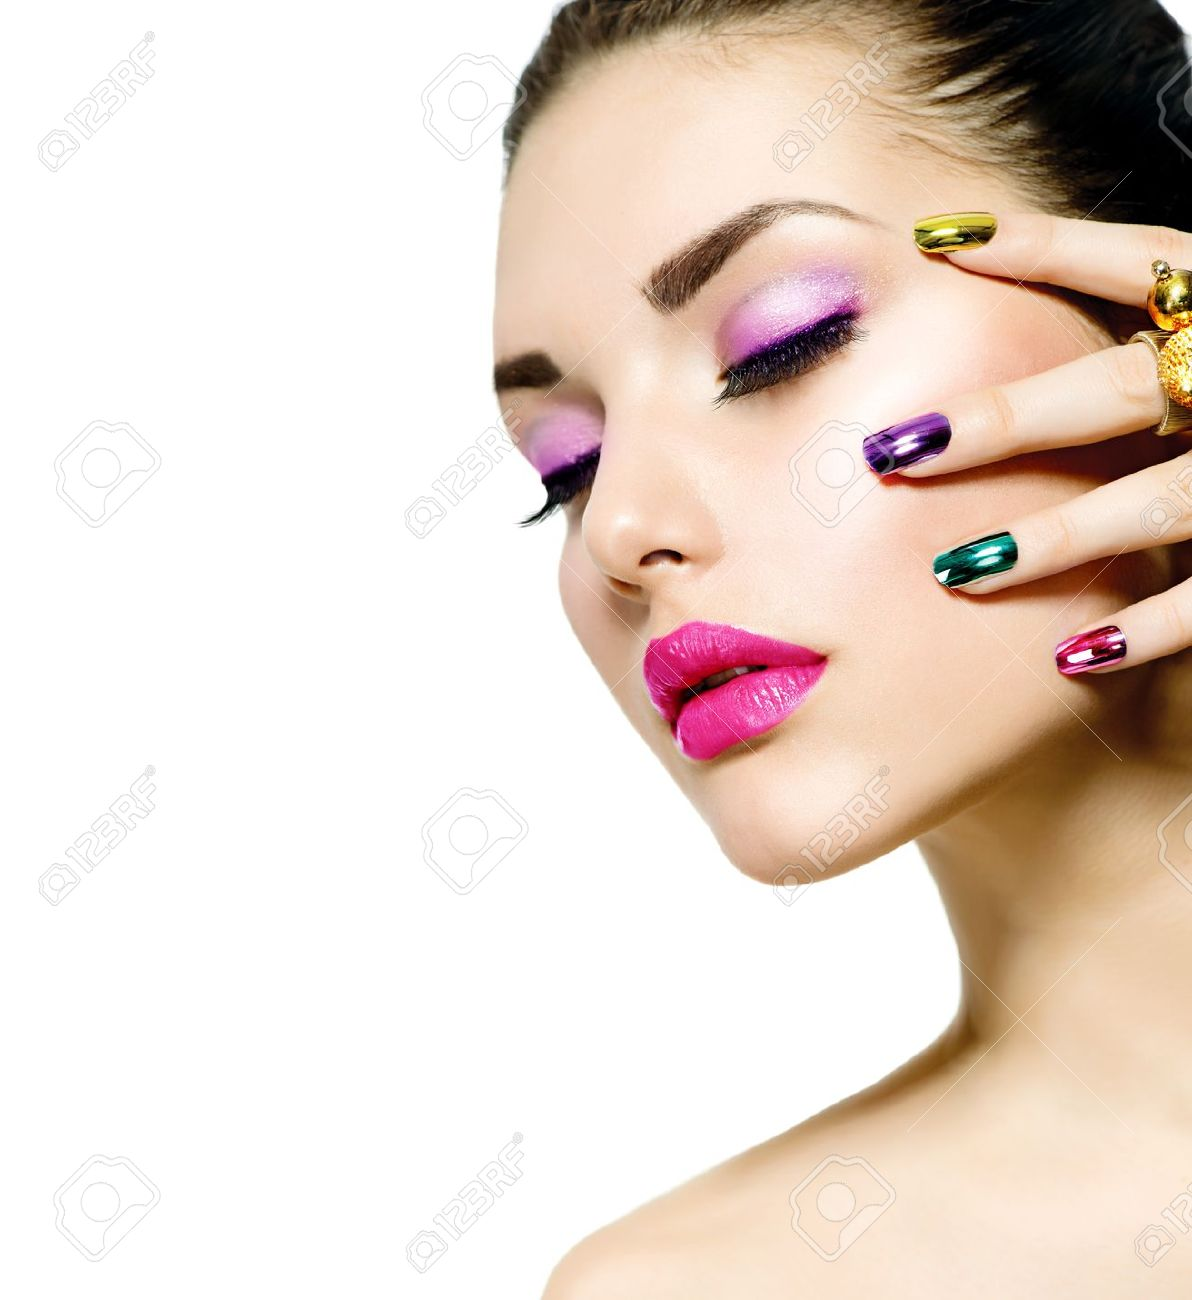 Fashion Beauty Manicure And Make-up Nail Art Stock Photo, Picture ...